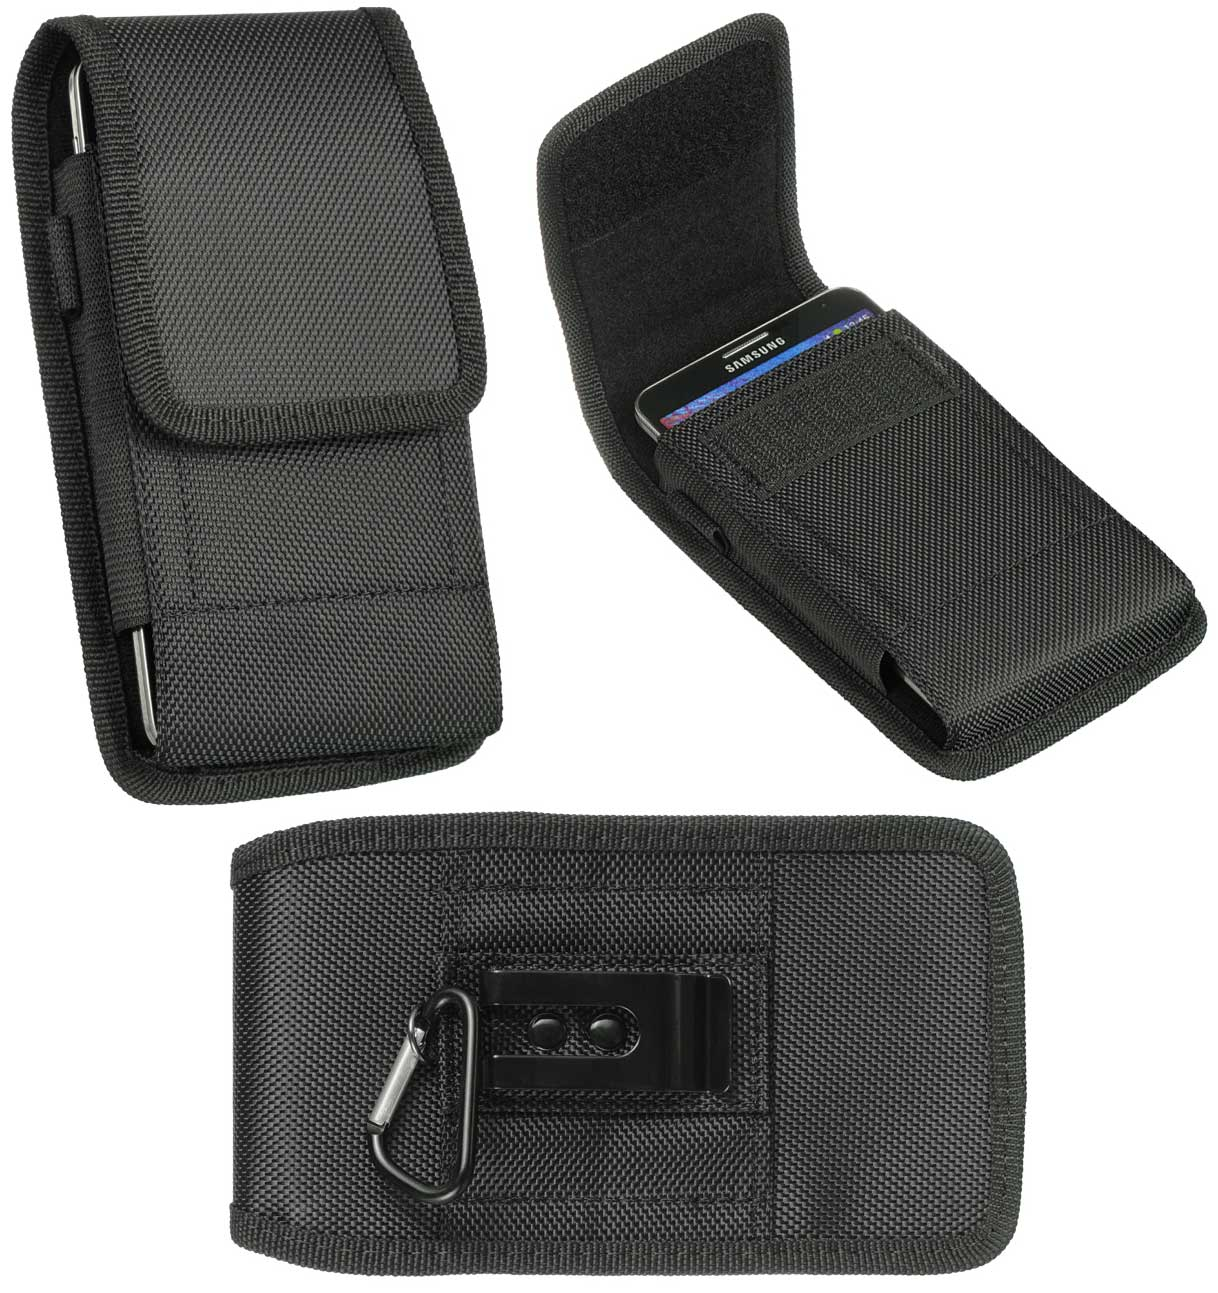 Samsung Galaxy S10e Neoprene Nylon Case Pouch Clip Hook Black